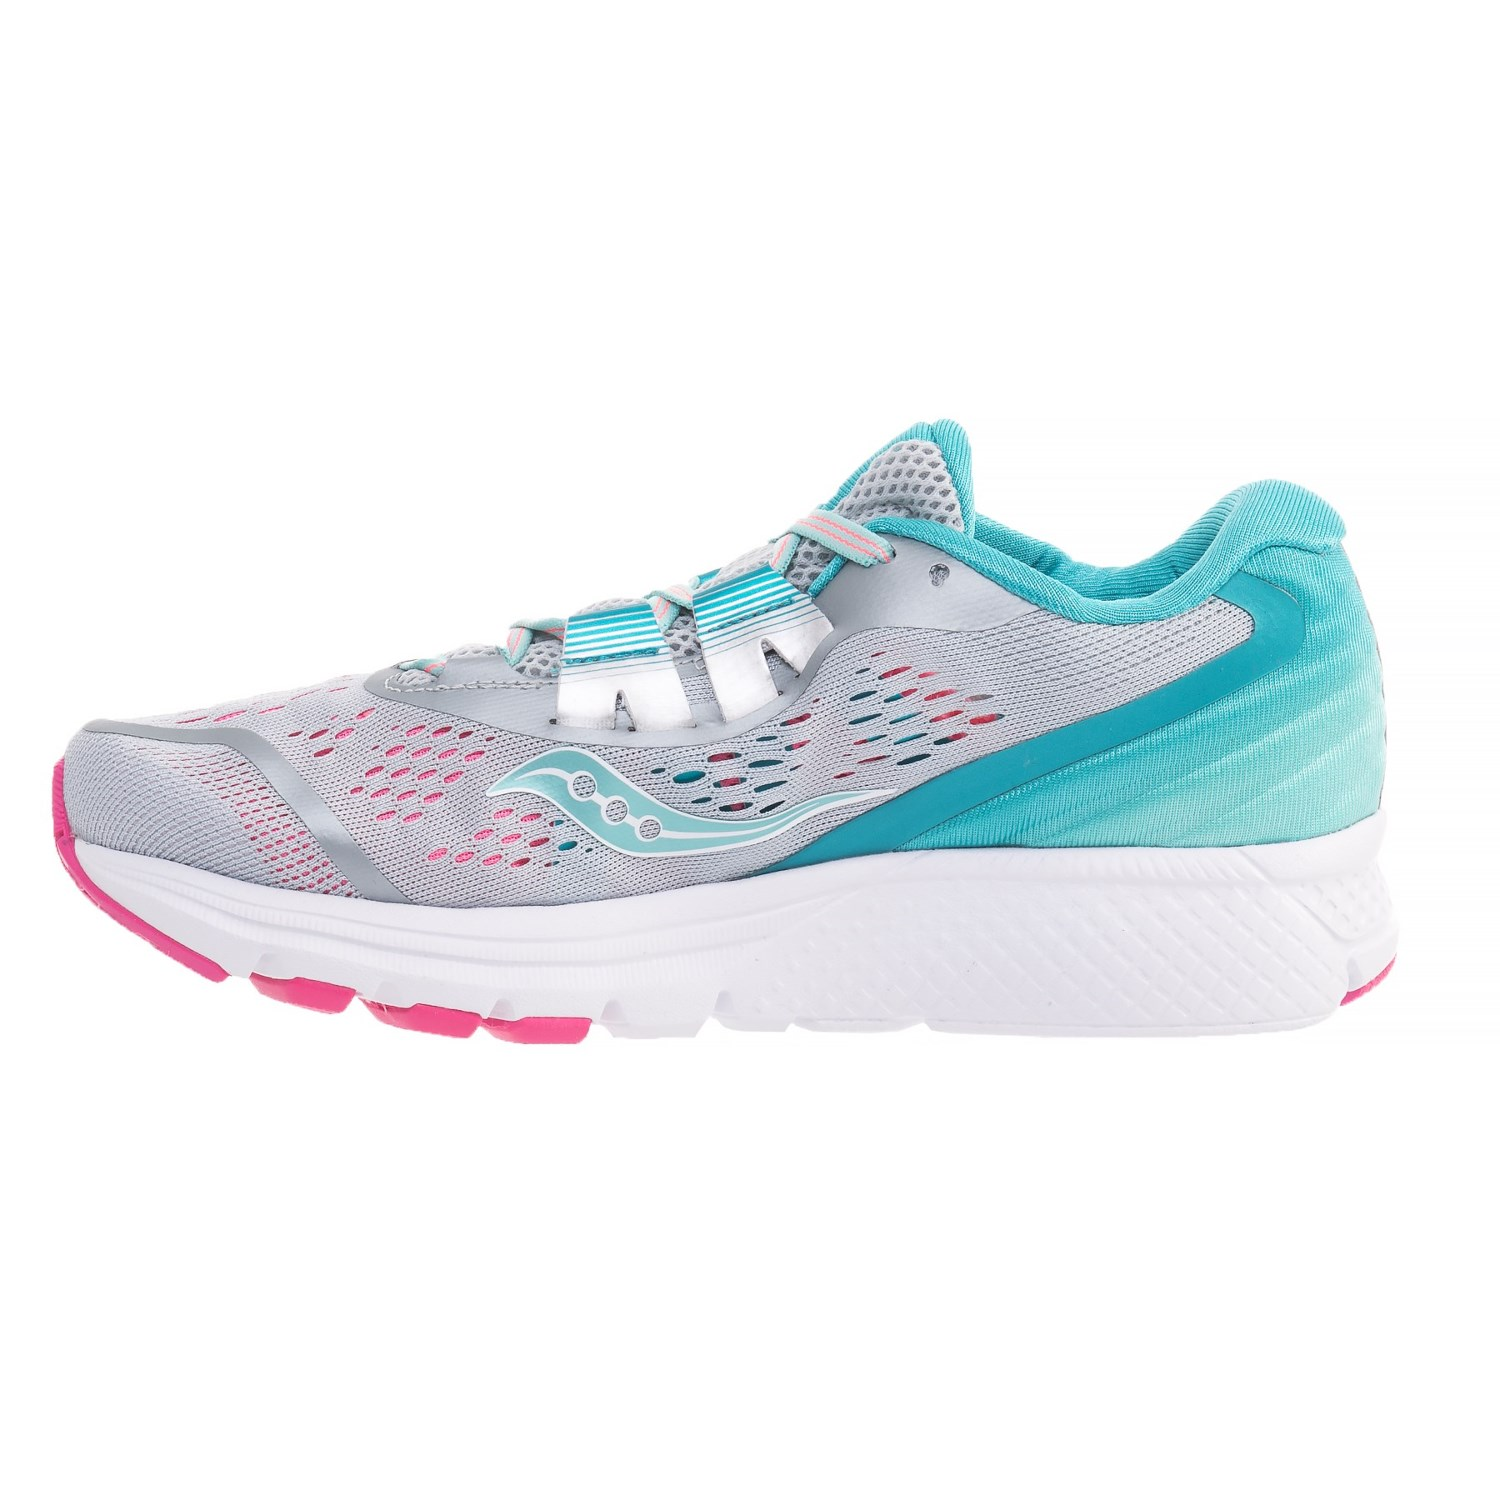 1ef7541a427e Saucony Zealot ISO 3 Running Shoes (For Women) - Save 46%